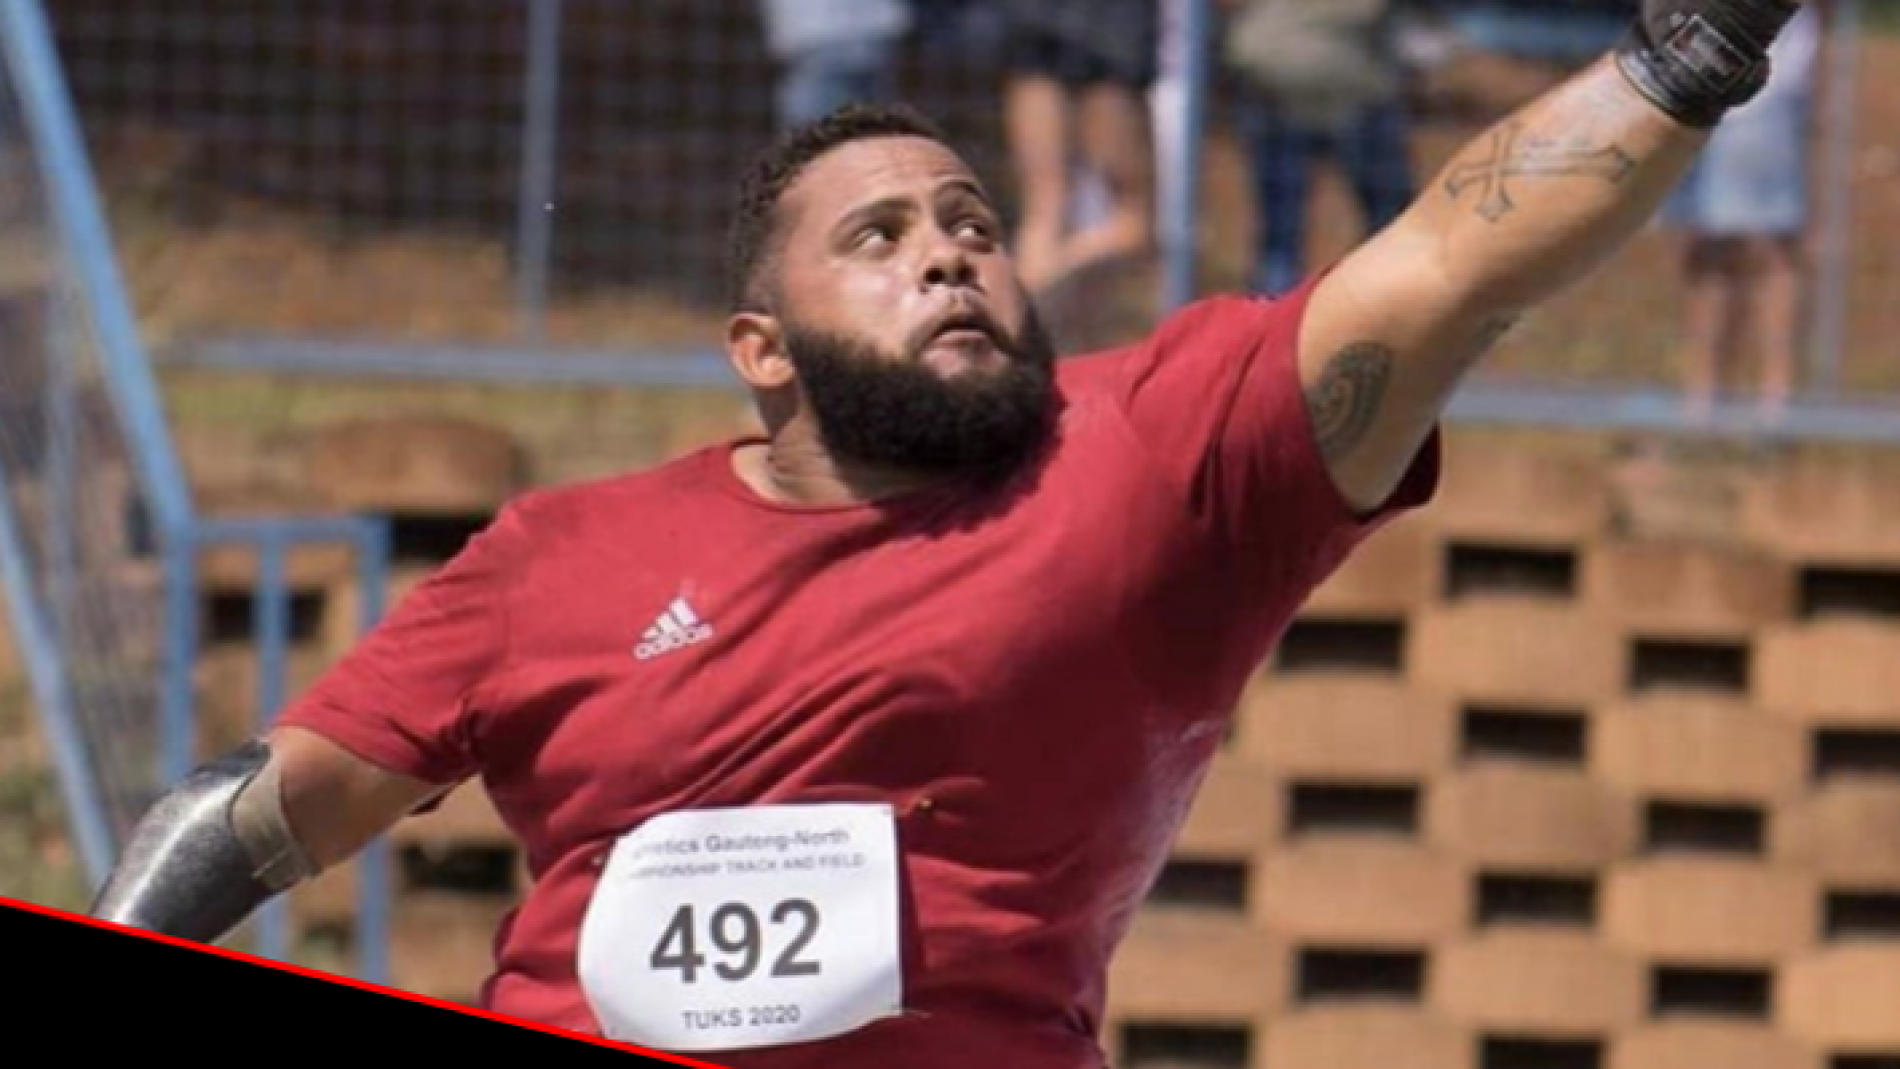 KERWIN NOEMDO - SHOT PUT ATHLETE